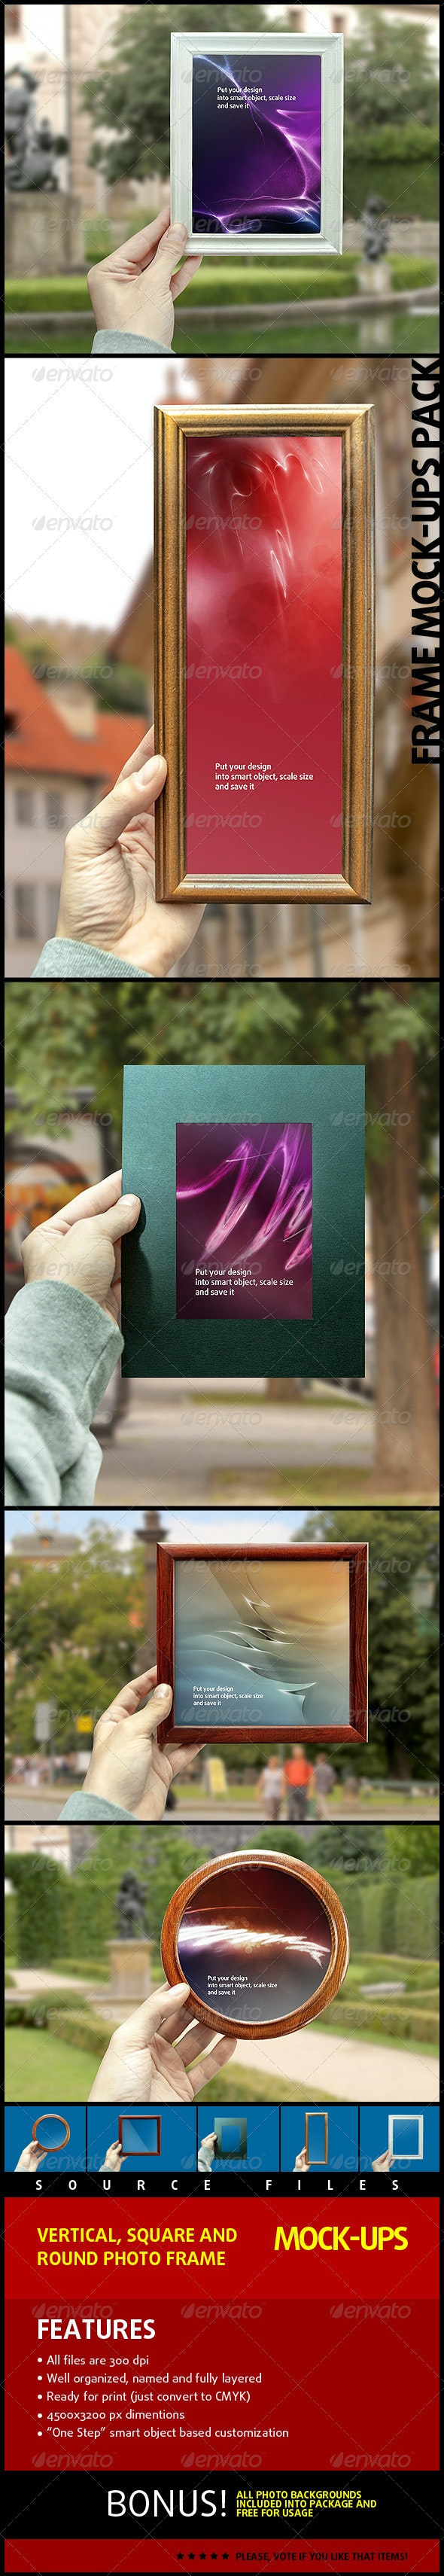 Photo Frame Mock-Ups Pack - Miscellaneous Displays